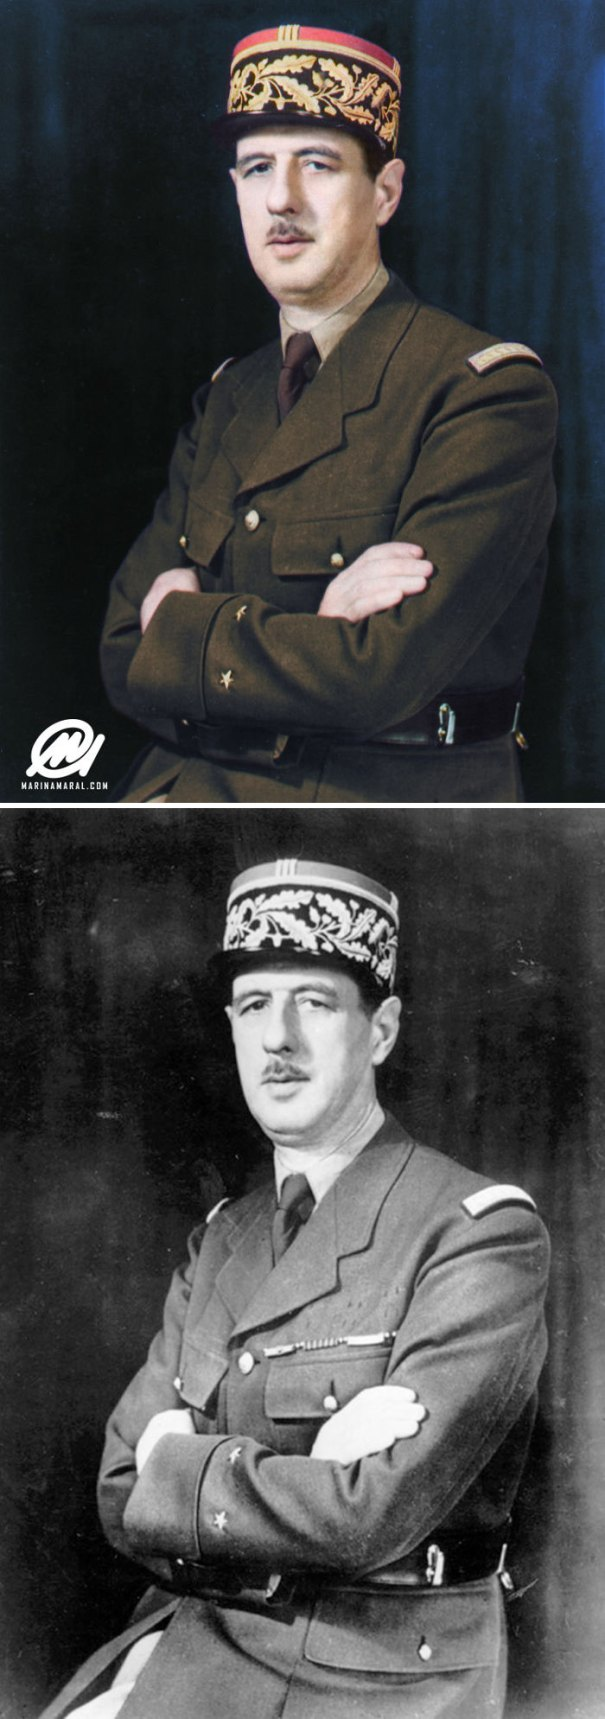 5b6d3b912942a-colorized-historic-photos-marina-amaral-51-5b6ae01219193__700 This Artist Colorizes Old Black & White Photos, And They Will Change The Way People Imagine History Photography Random